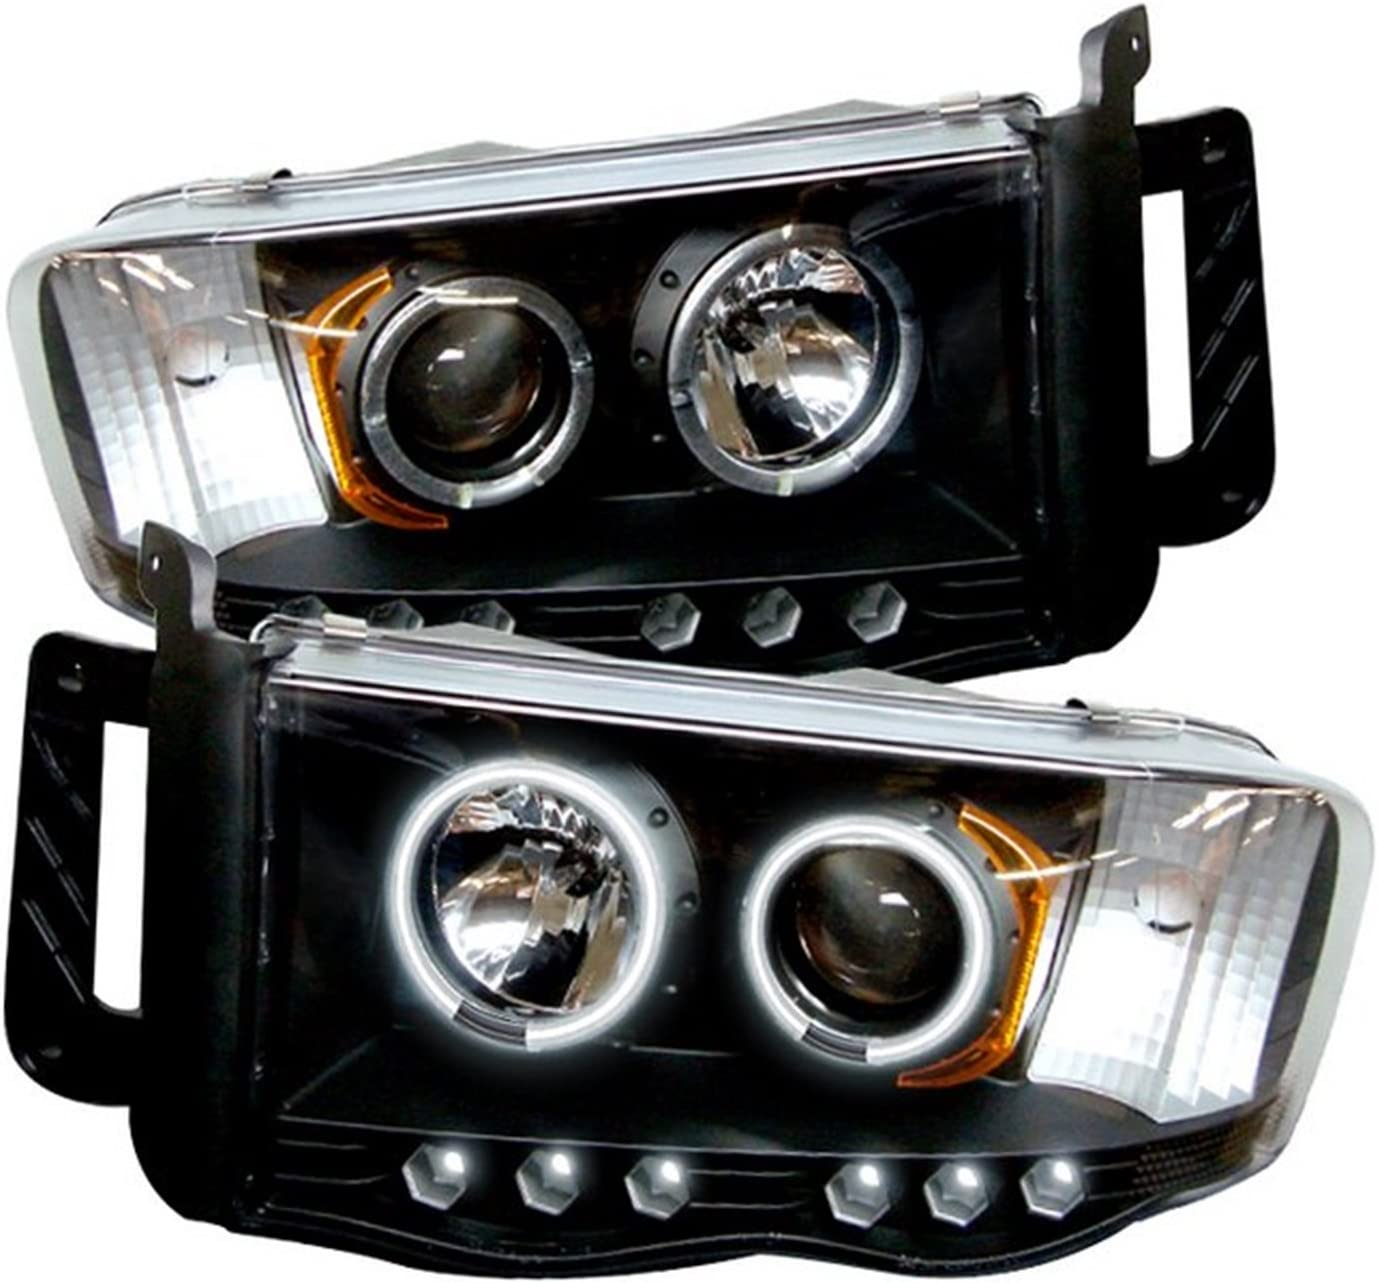 2008 Subaru IMPREZA 5DR -Black Post mount spotlight Passenger side WITH install kit 100W Halogen 6 inch